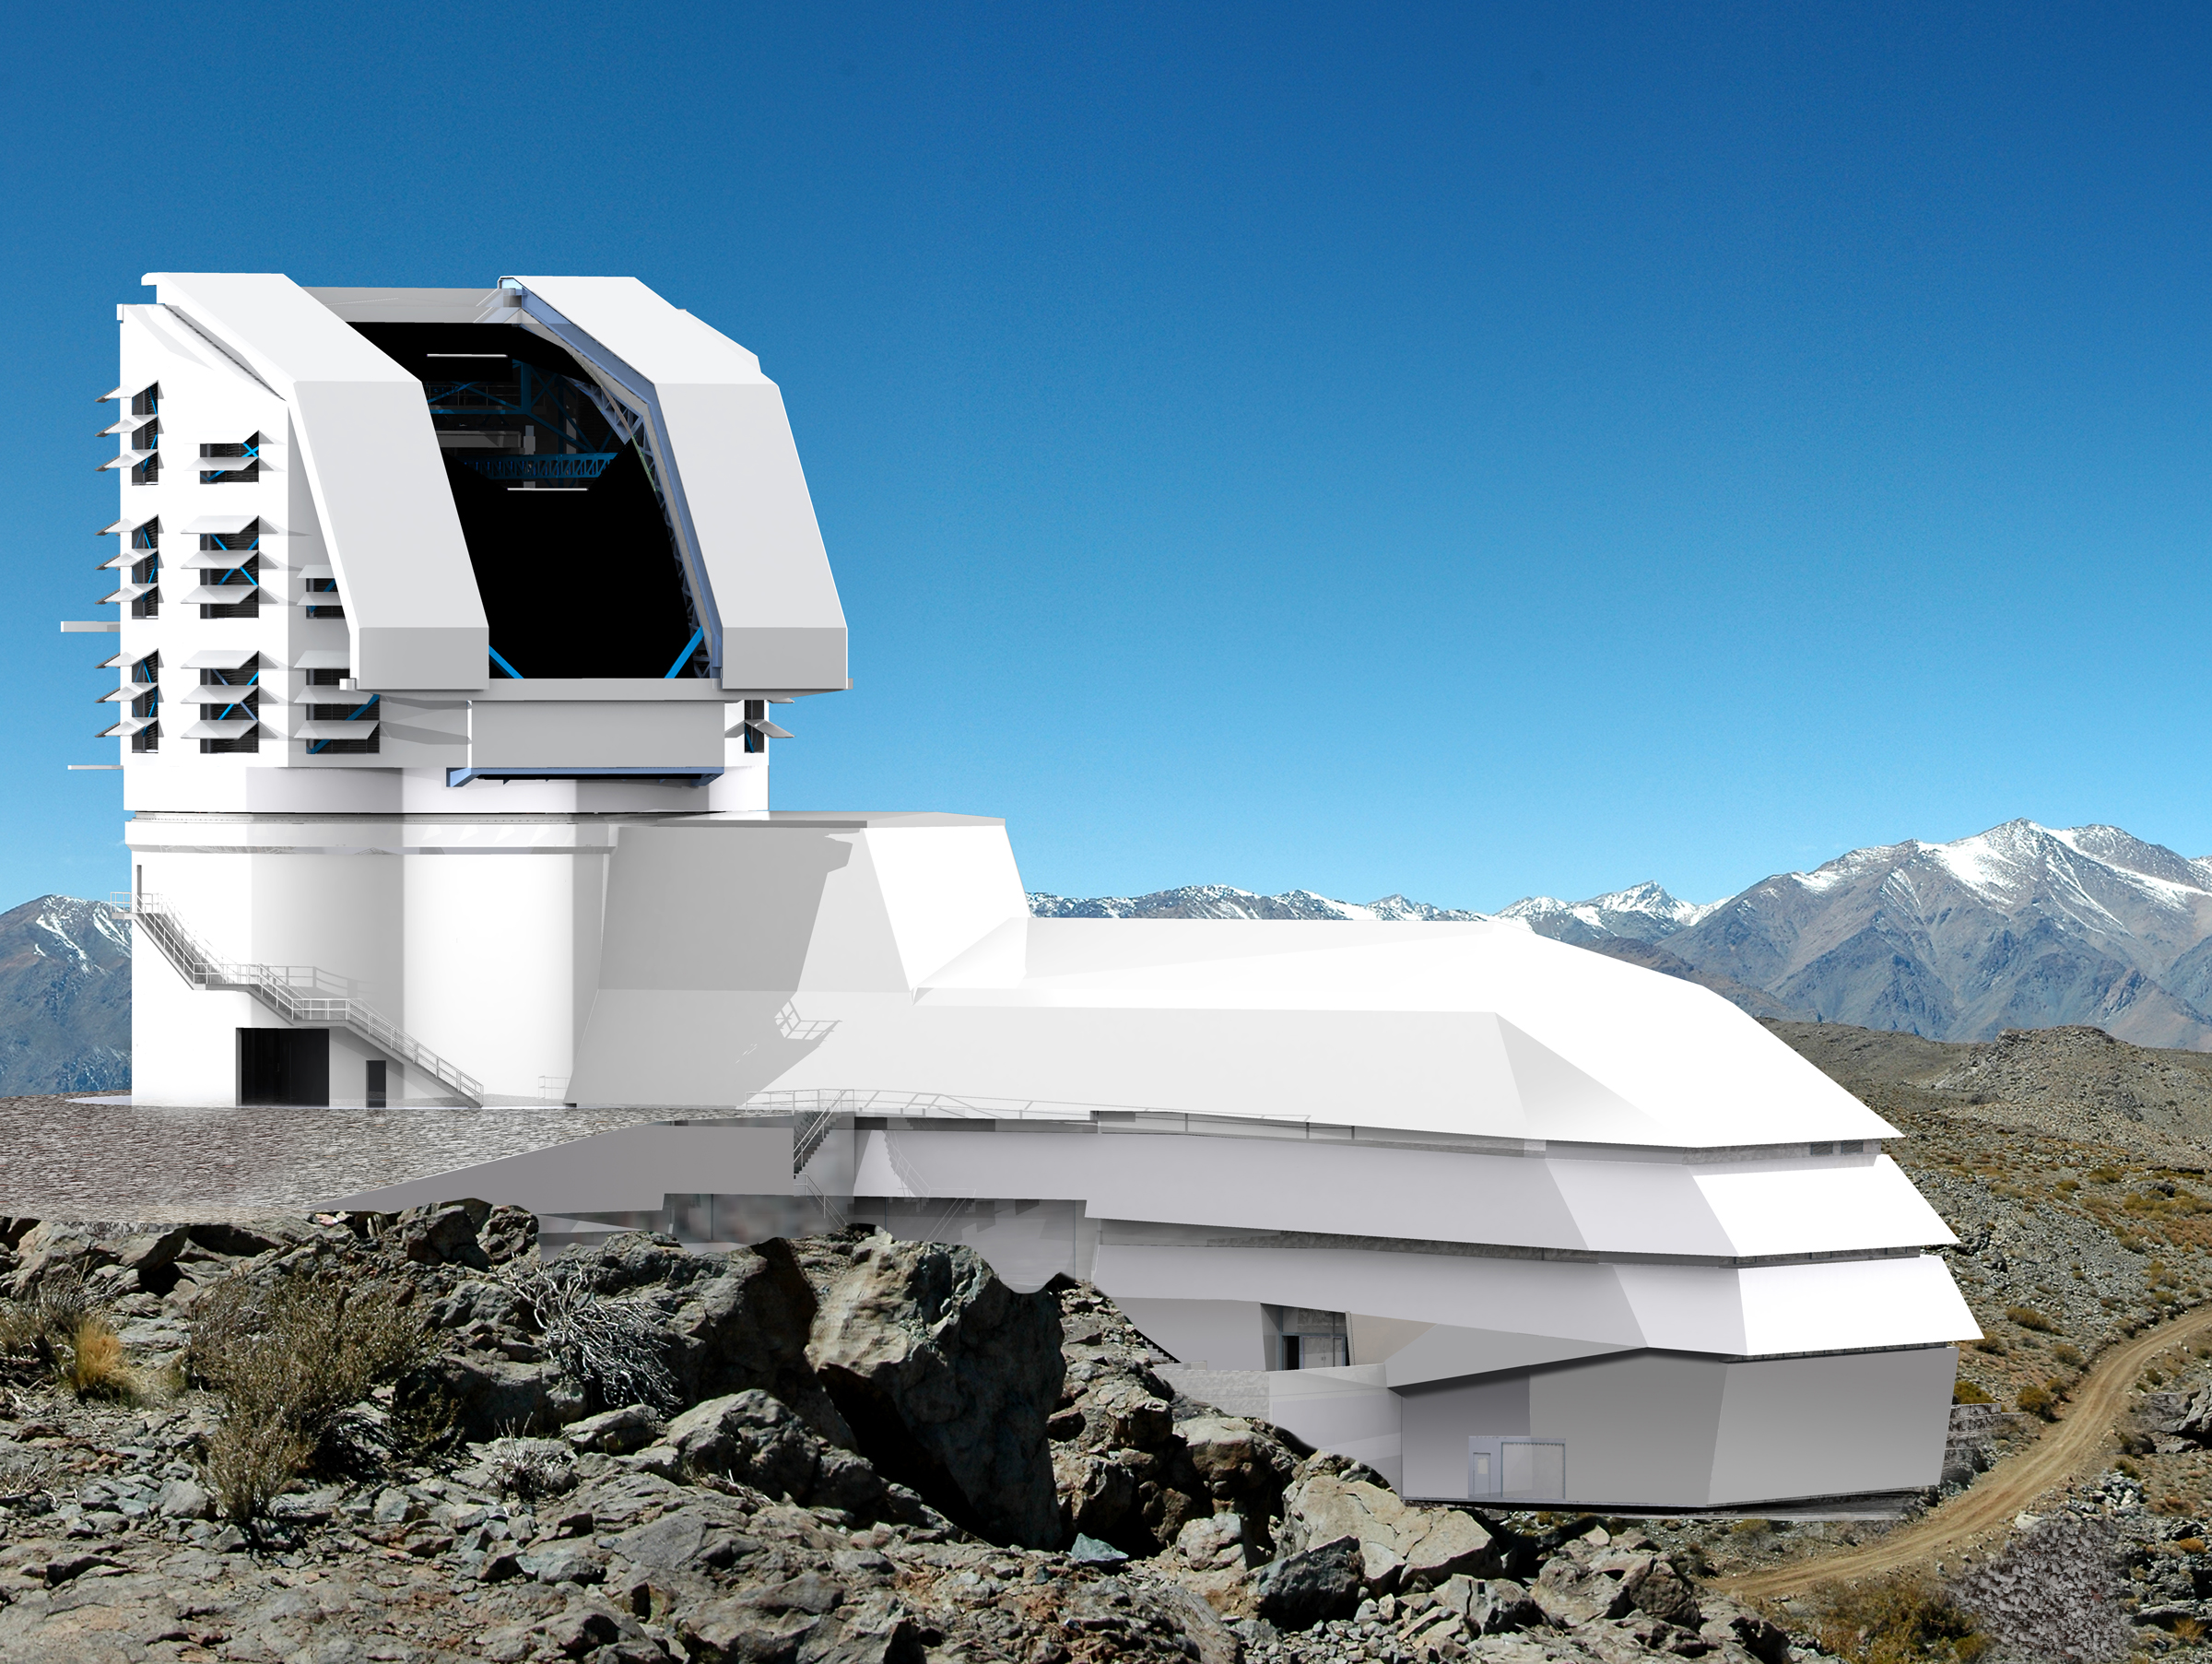 Image result for The Large Synoptic Survey Telescope